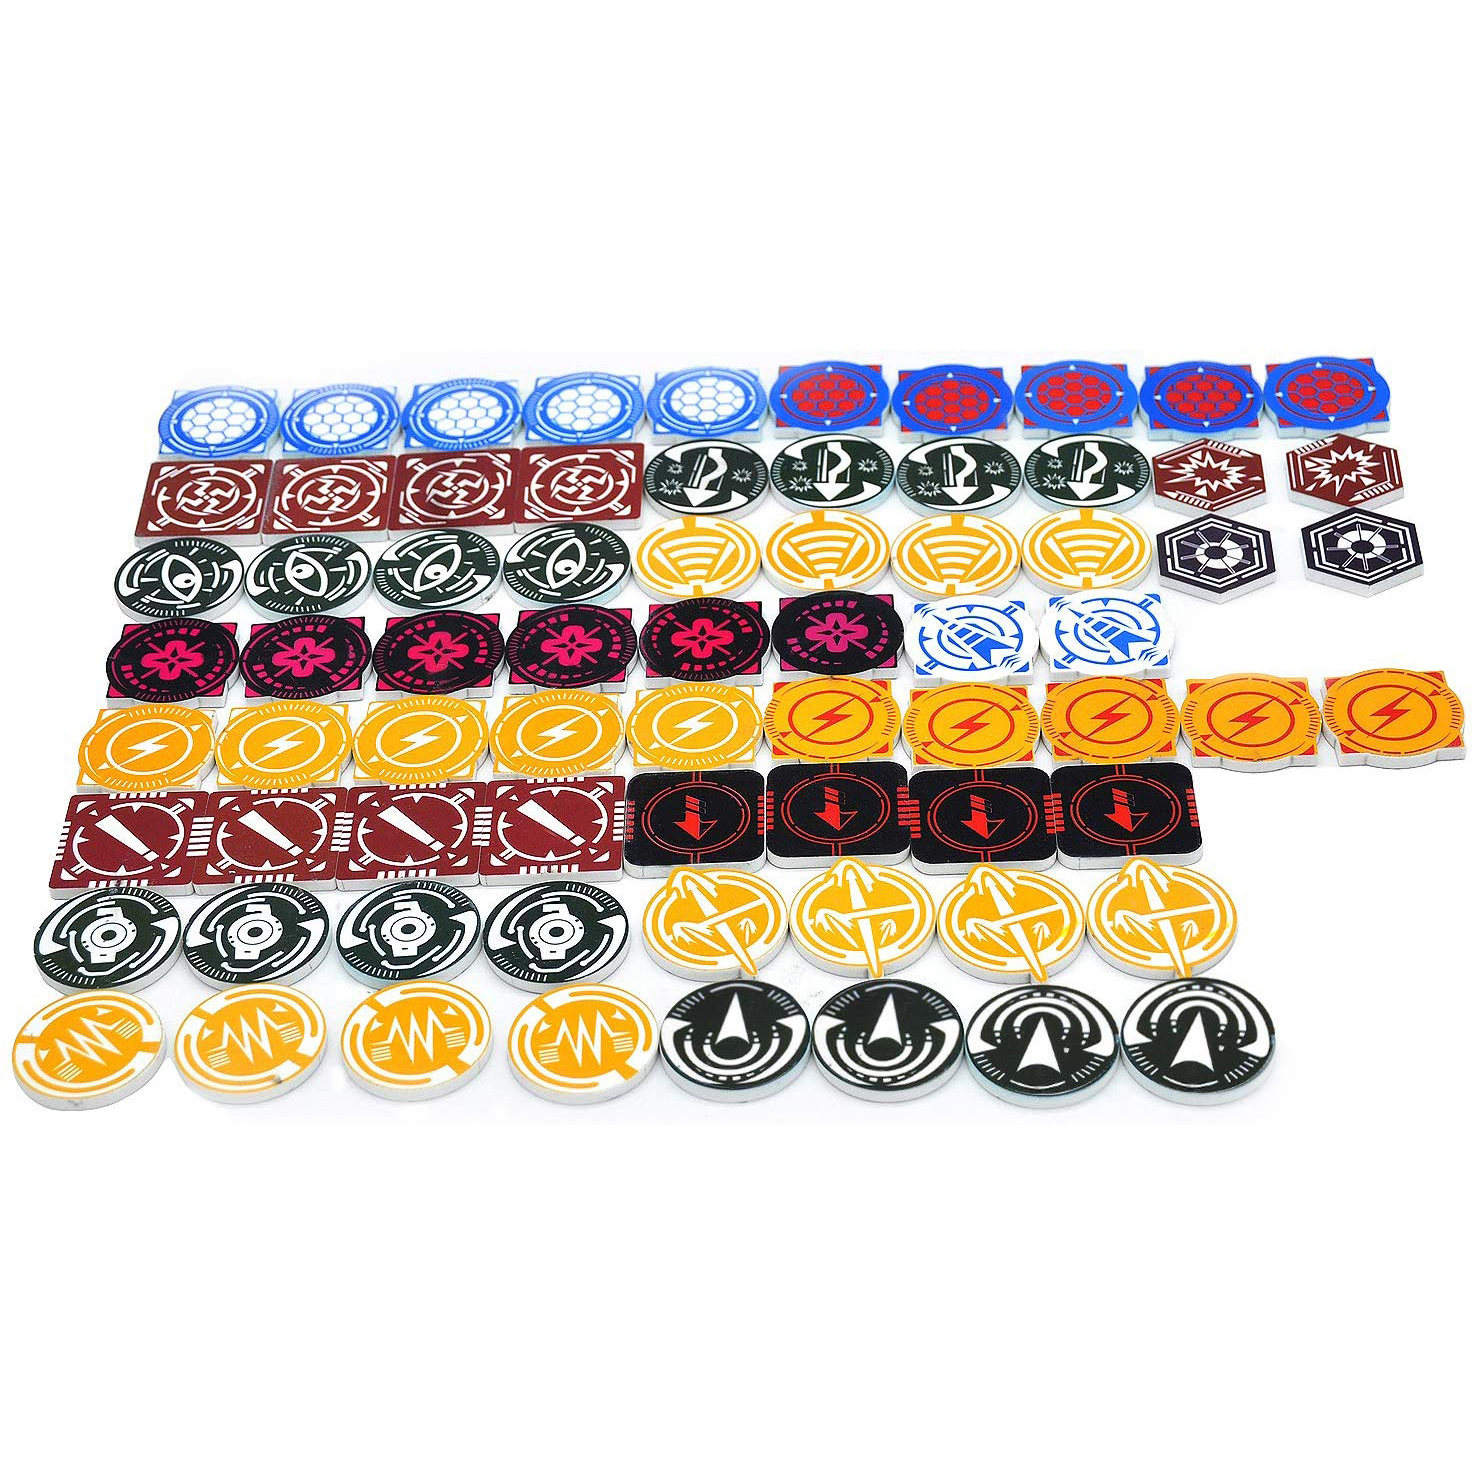 X Wing Acrylic Tokens & Markers Set of 72 - Combatible with X-Wing Miniatures Game Essentials for Space Fight Players